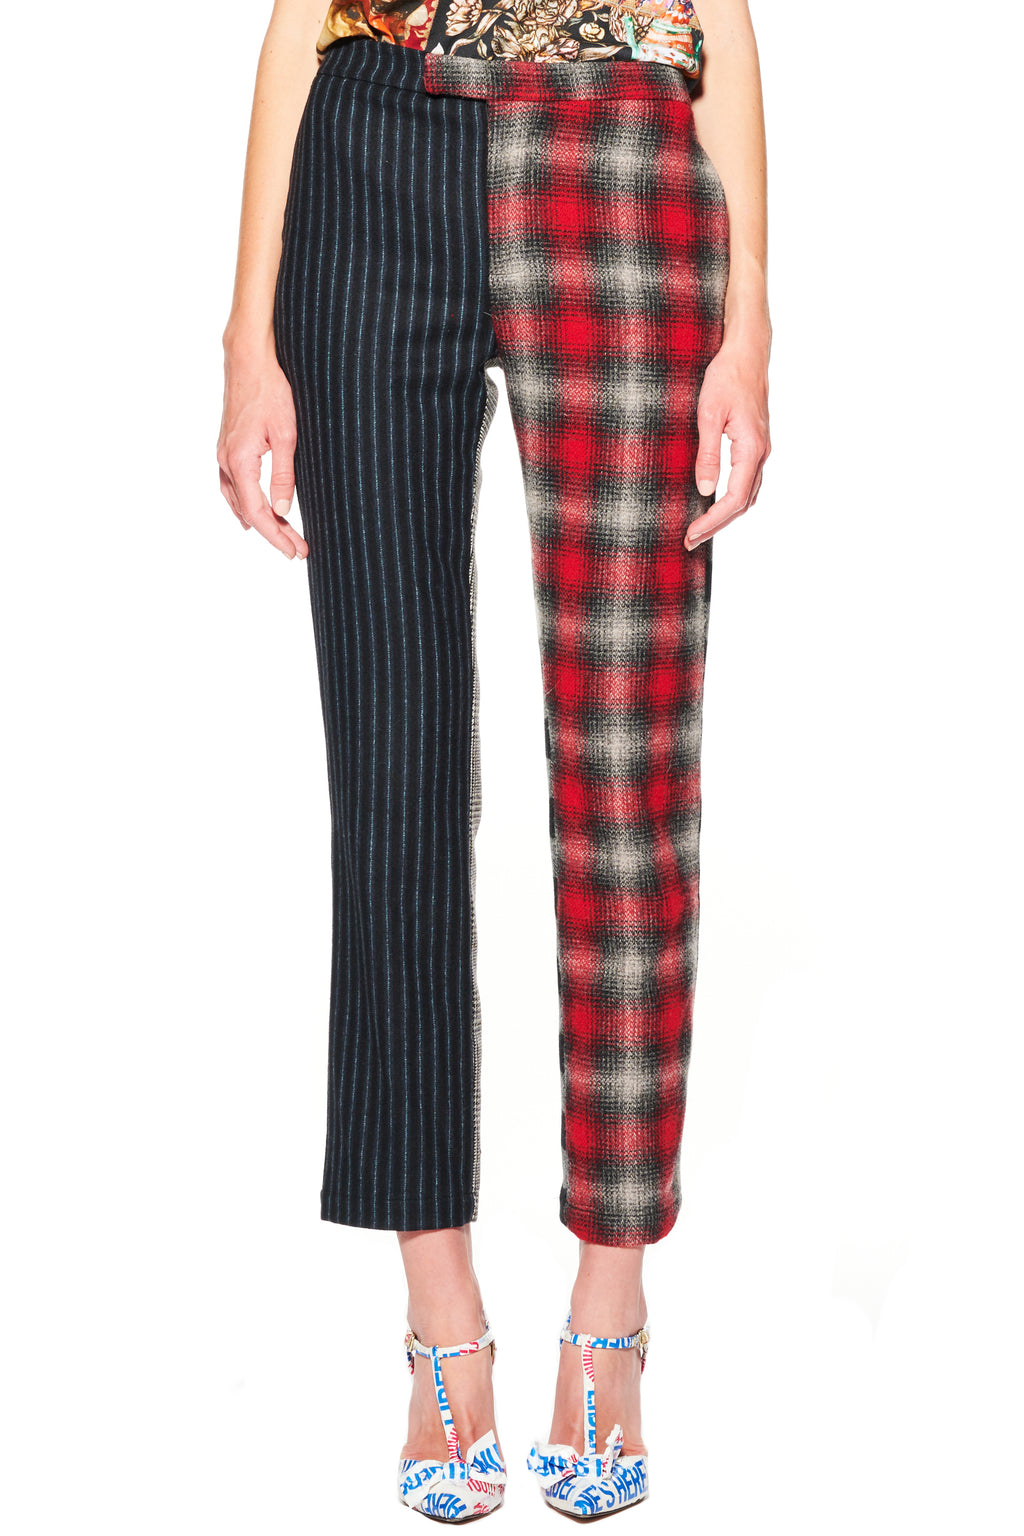 'PLAIDITUDES' PANTS - Web Exclusives - Libertine